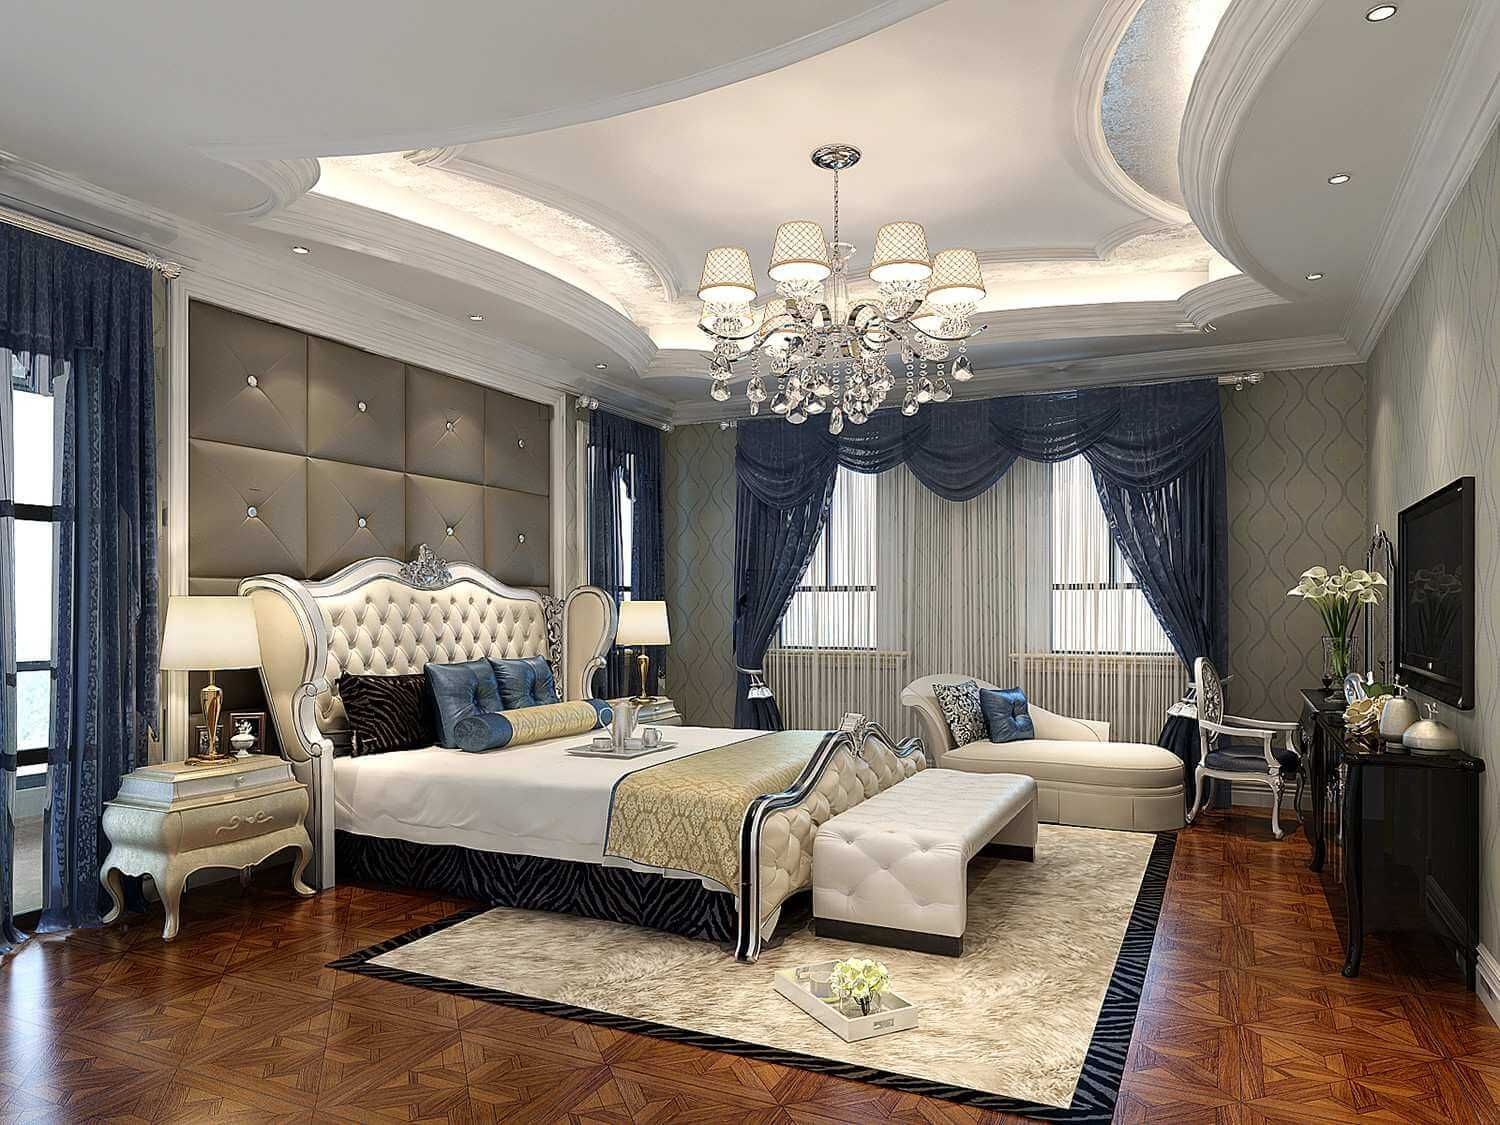 Magnificent Ultra Modern Ceiling Design In Your Bedroom 2020